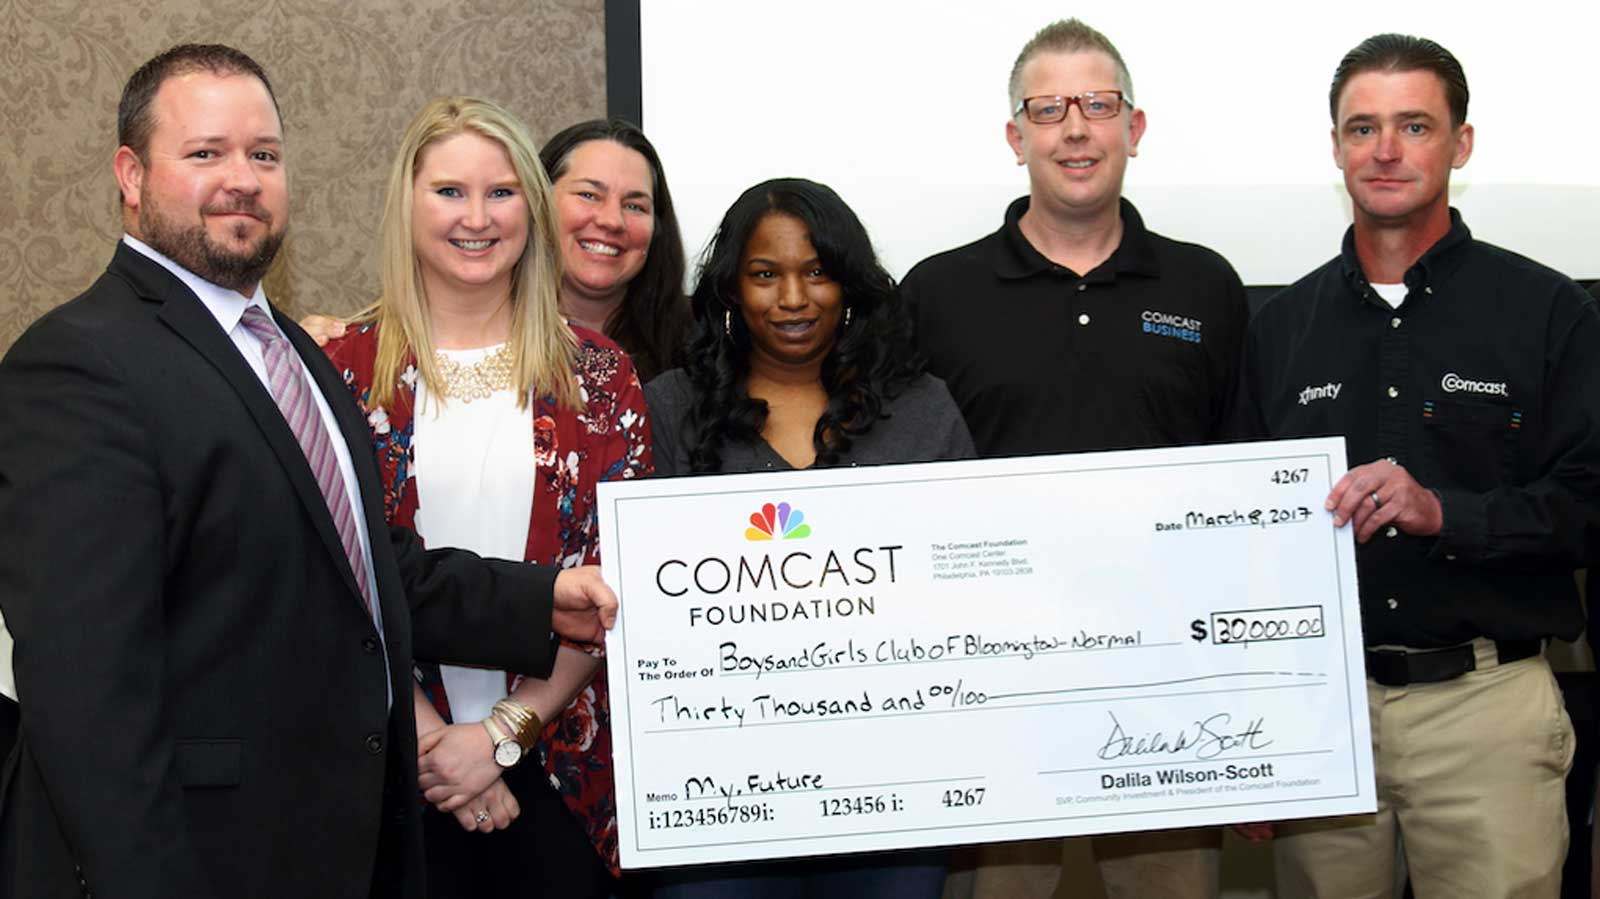 Recipients from Boys and Girls Clubs of Bloomington-Normal receiving check